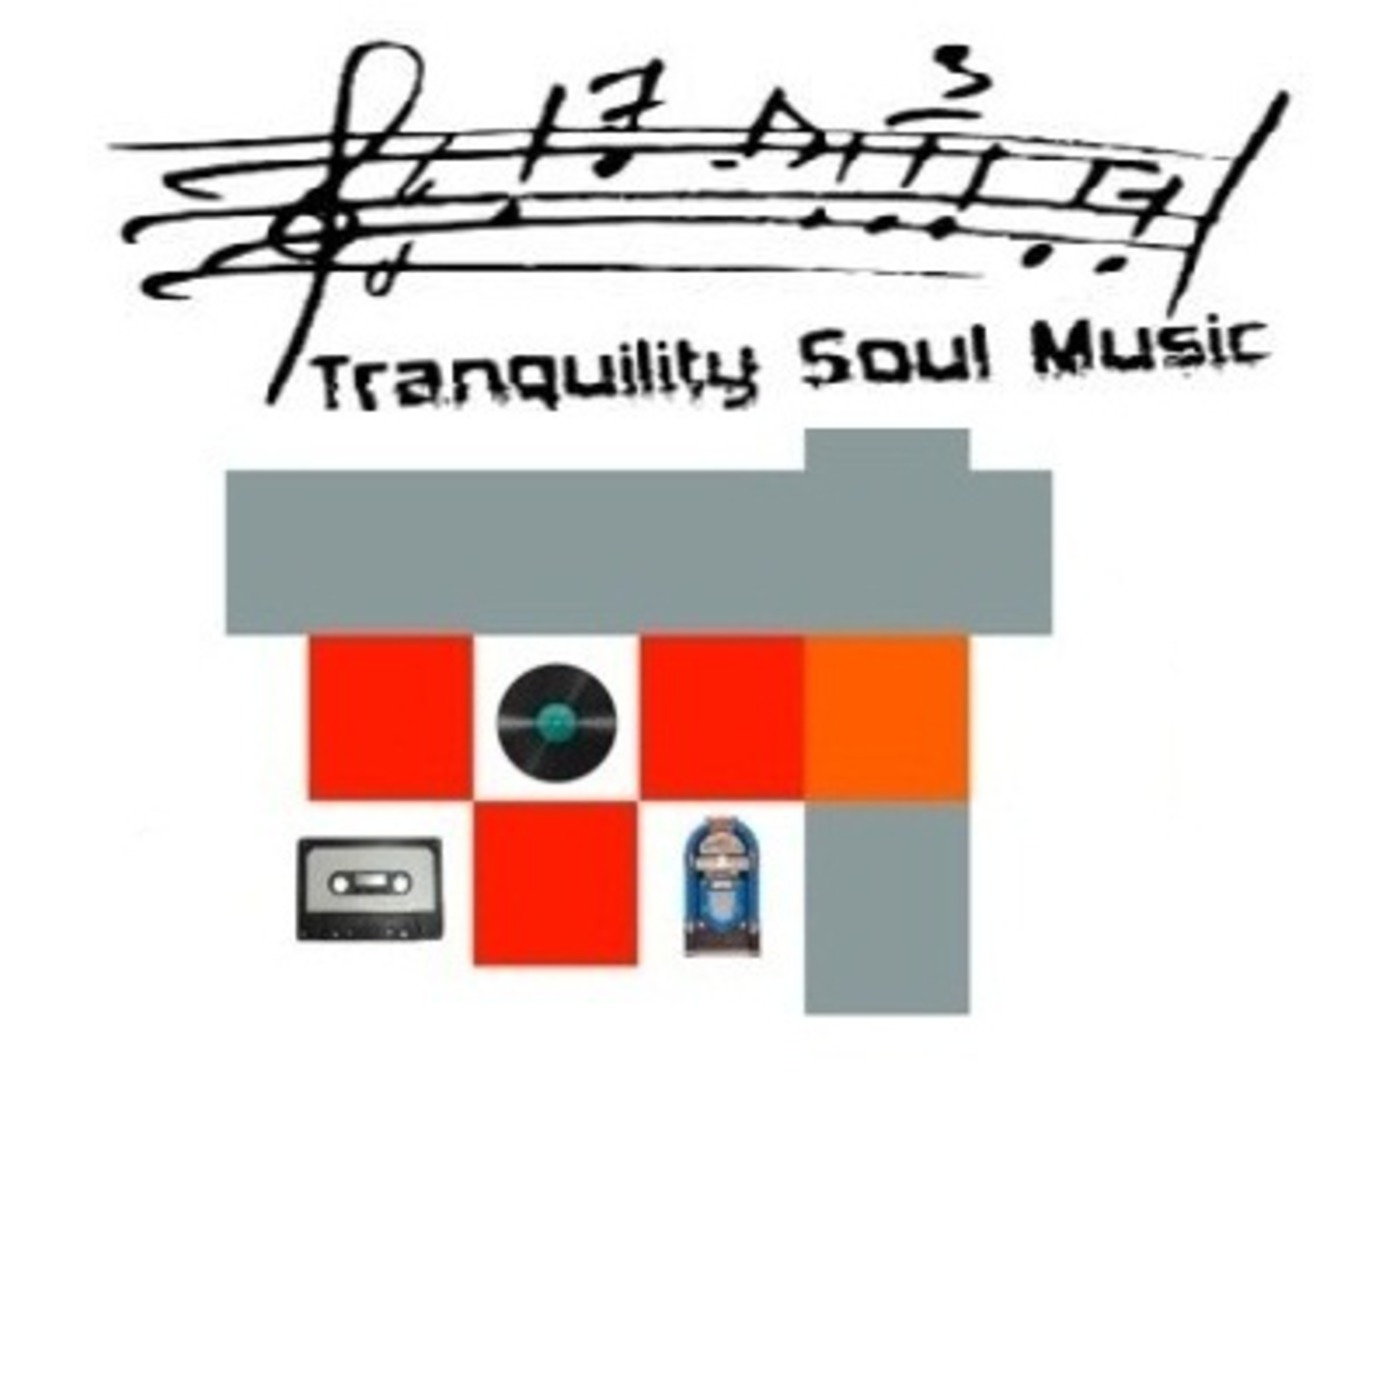 Tranquility clipart soul Tranquility Fam Soul Track Tranquility